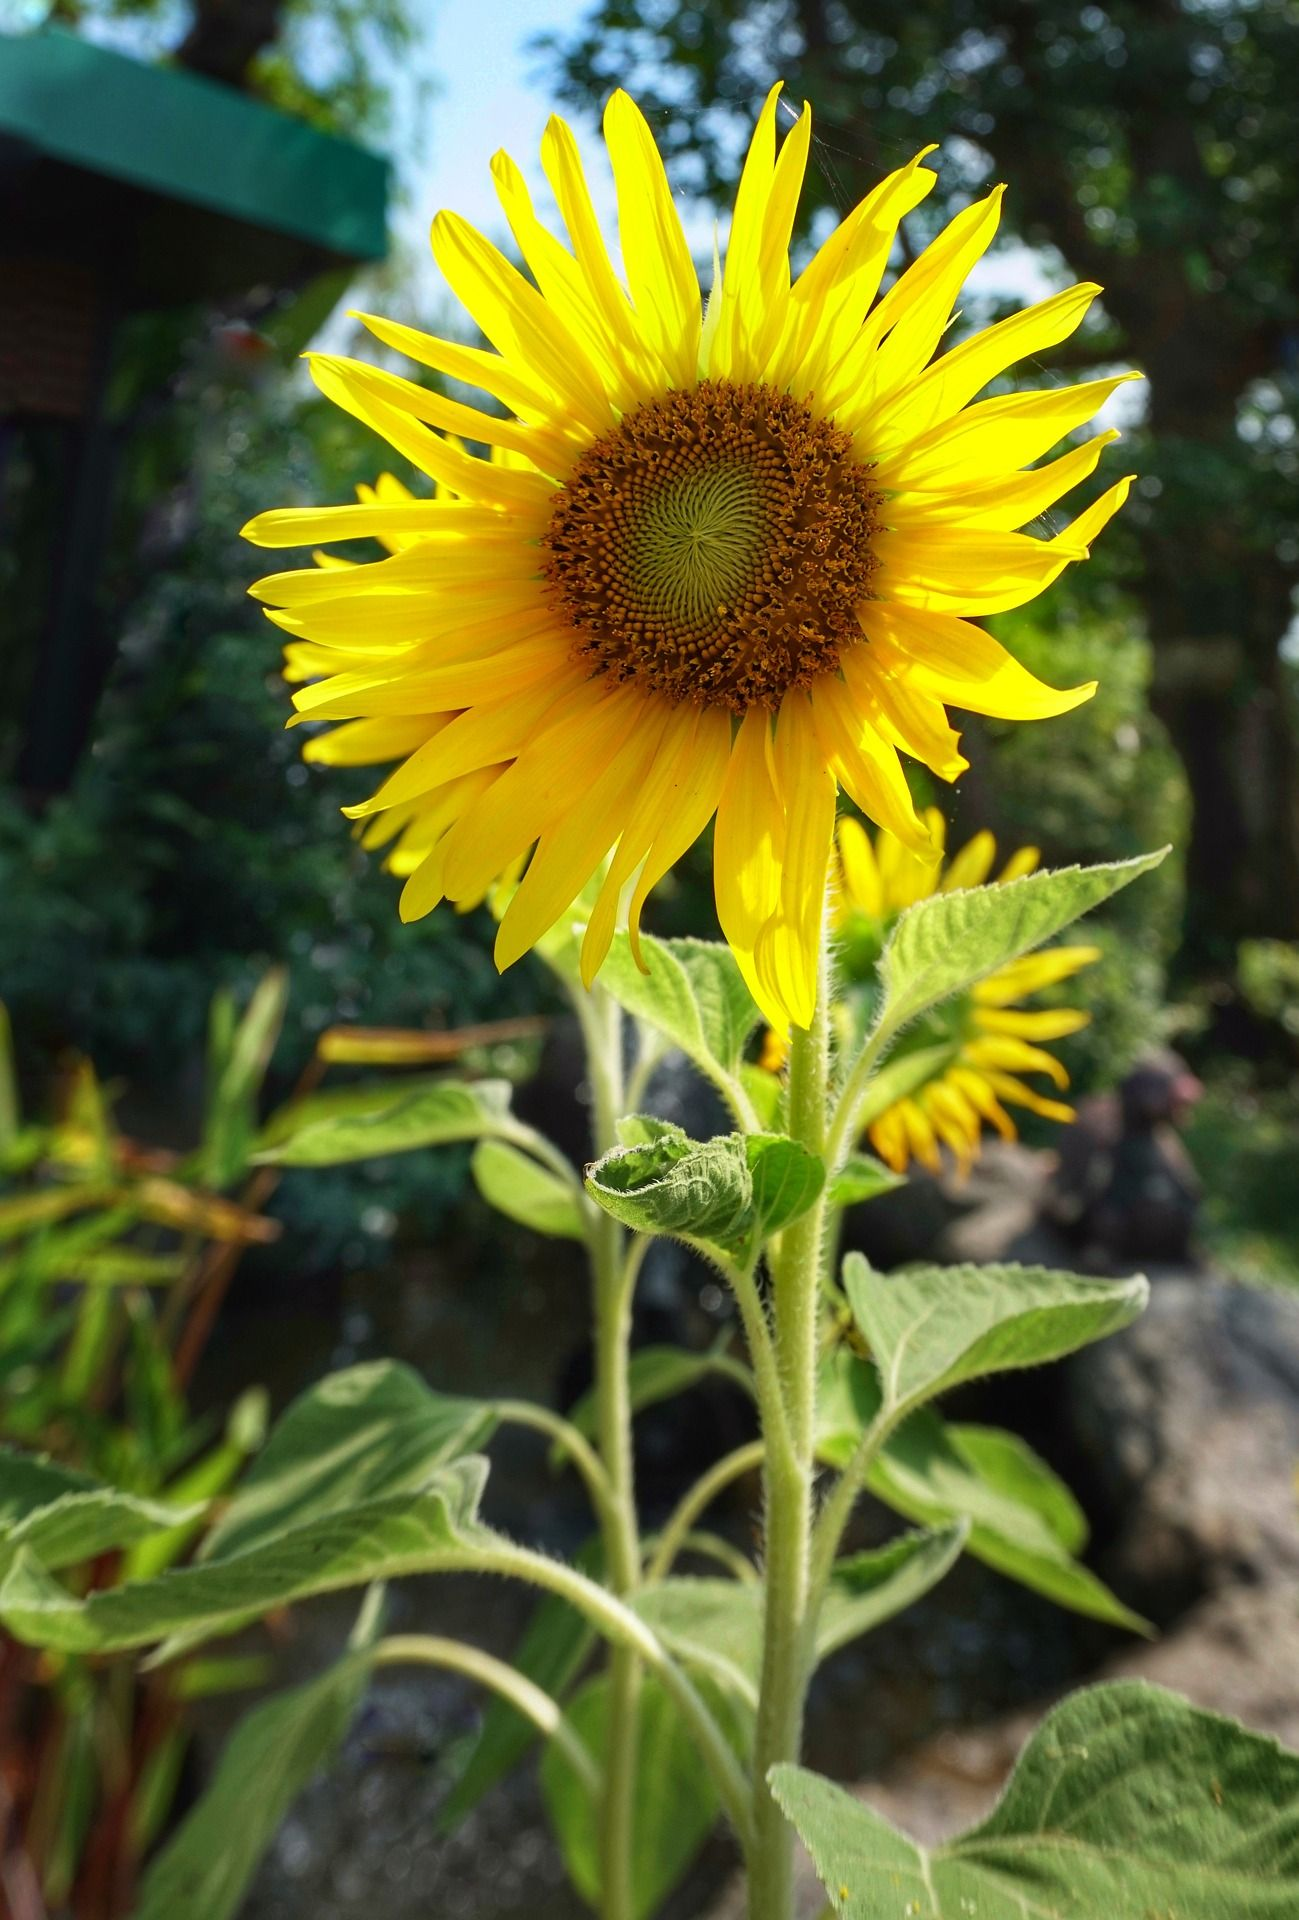 How To Grow Sunflowers For Seeds Growing Sunflowers Growing Vegetables Harvesting Sunflower Seeds